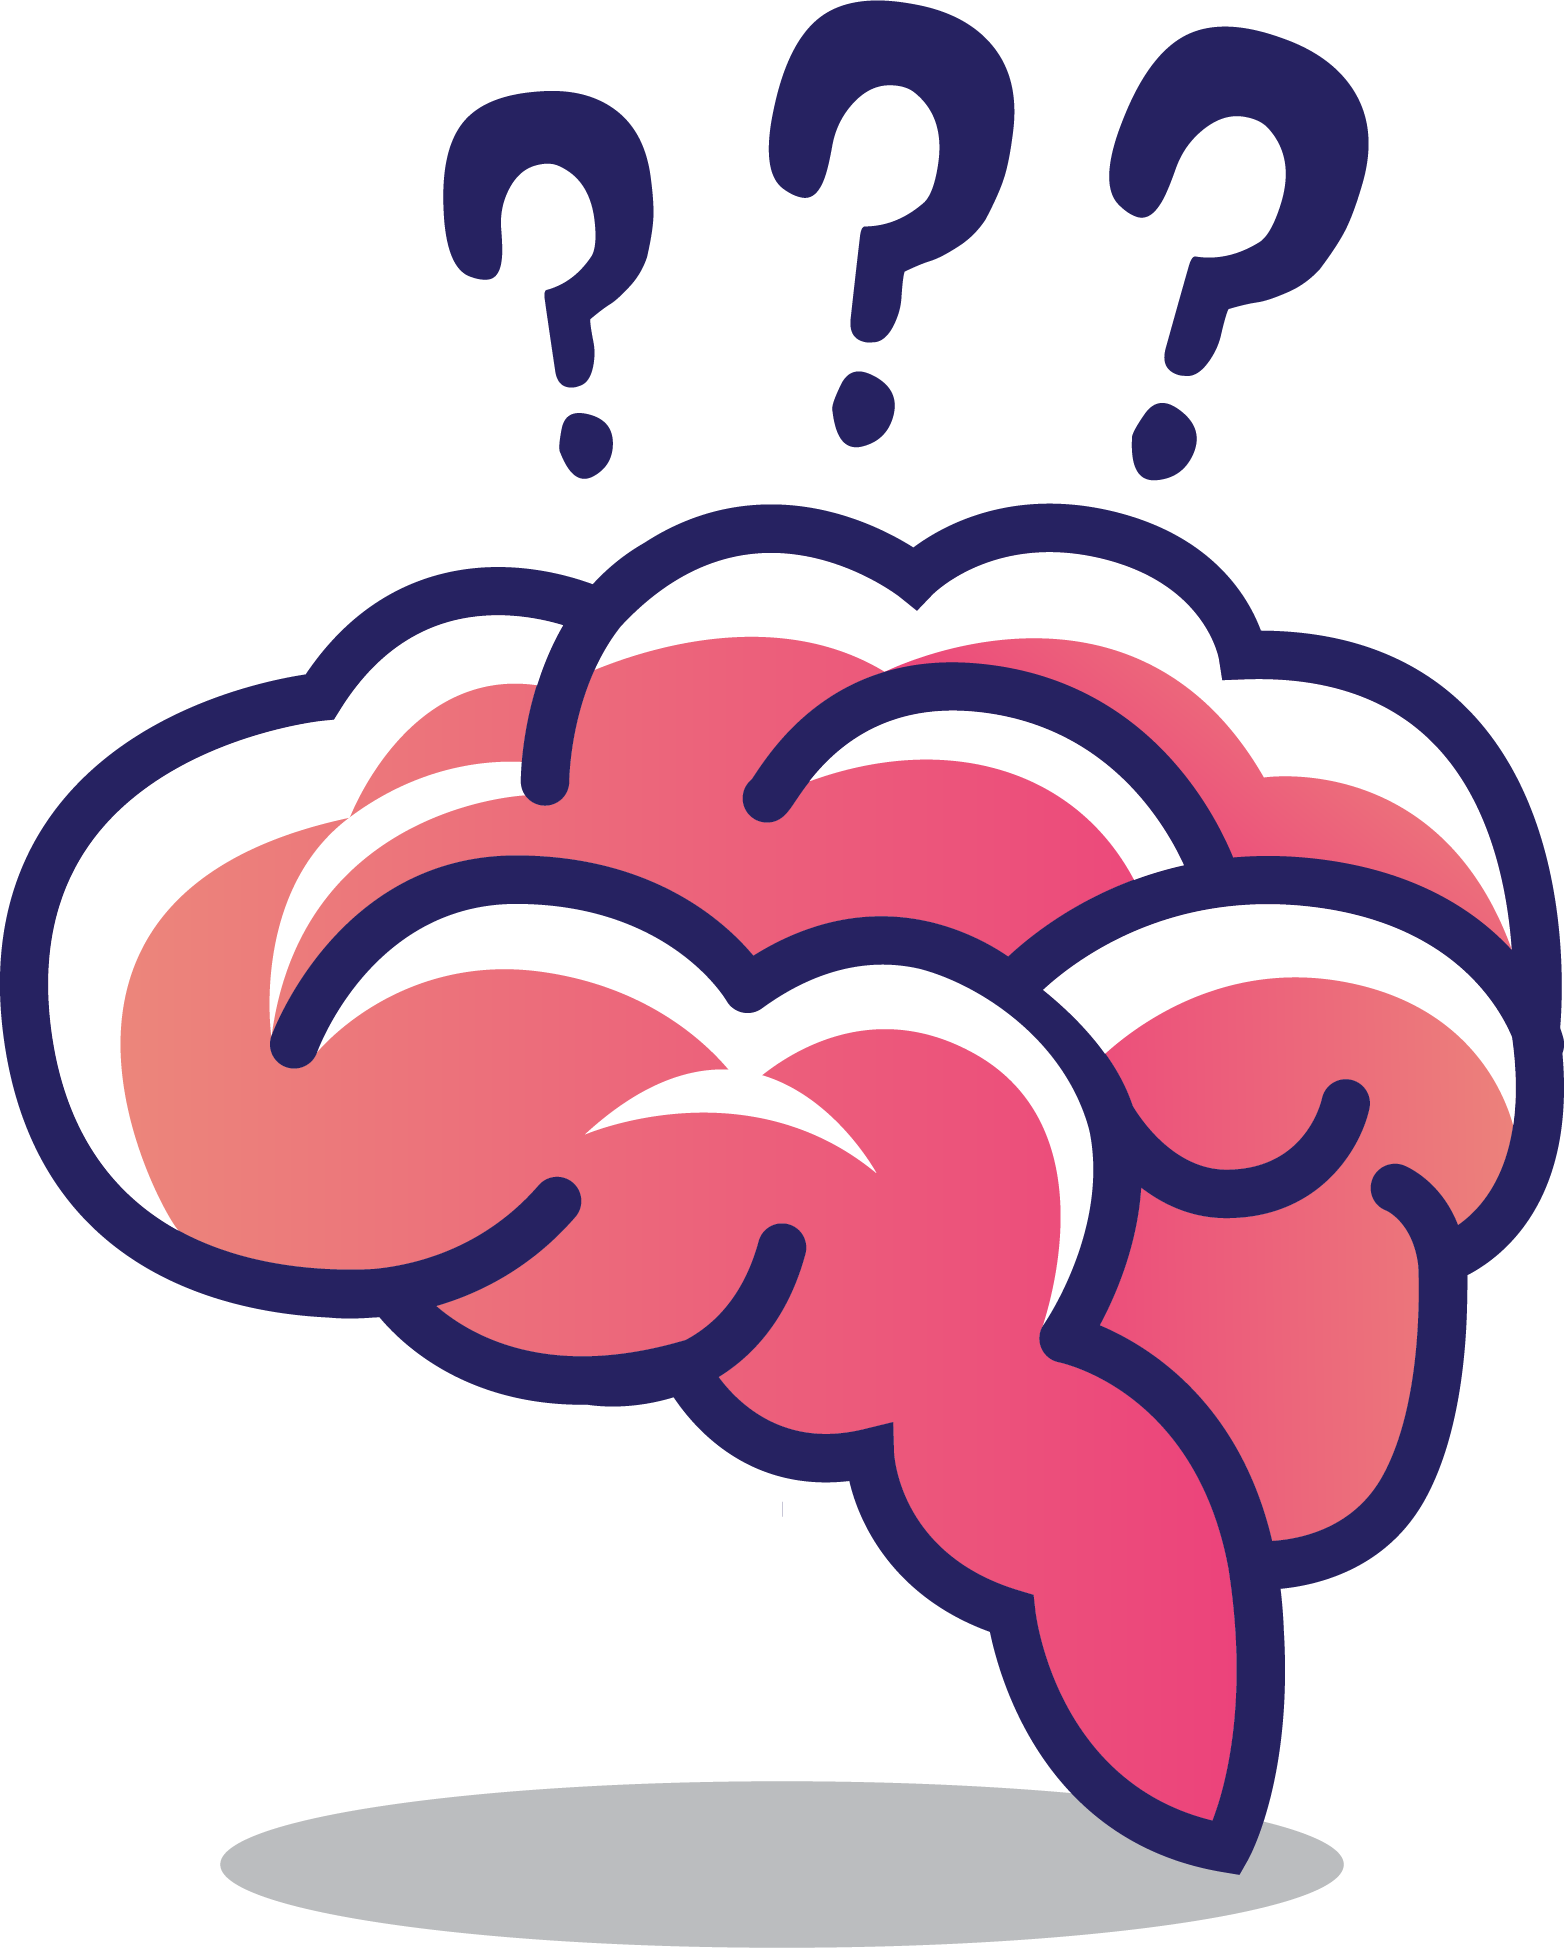 Brain cerebrum clip art. Thoughts clipart human thinking